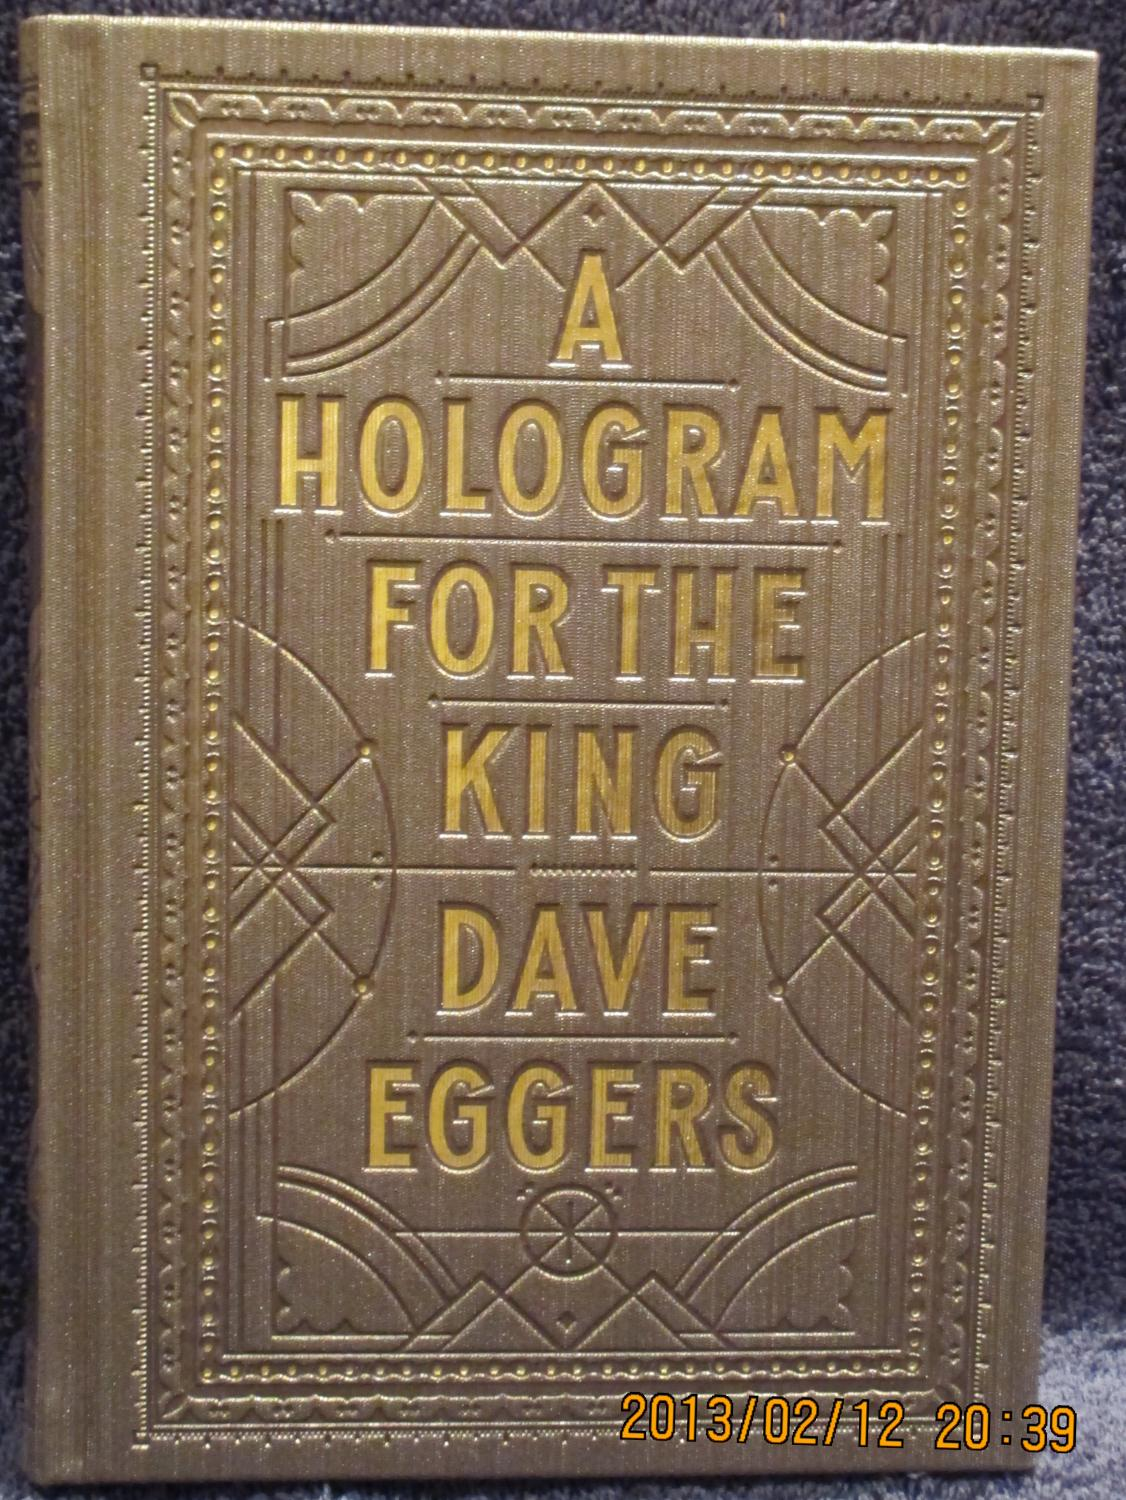 A Hologram For the King Eggers, Dave